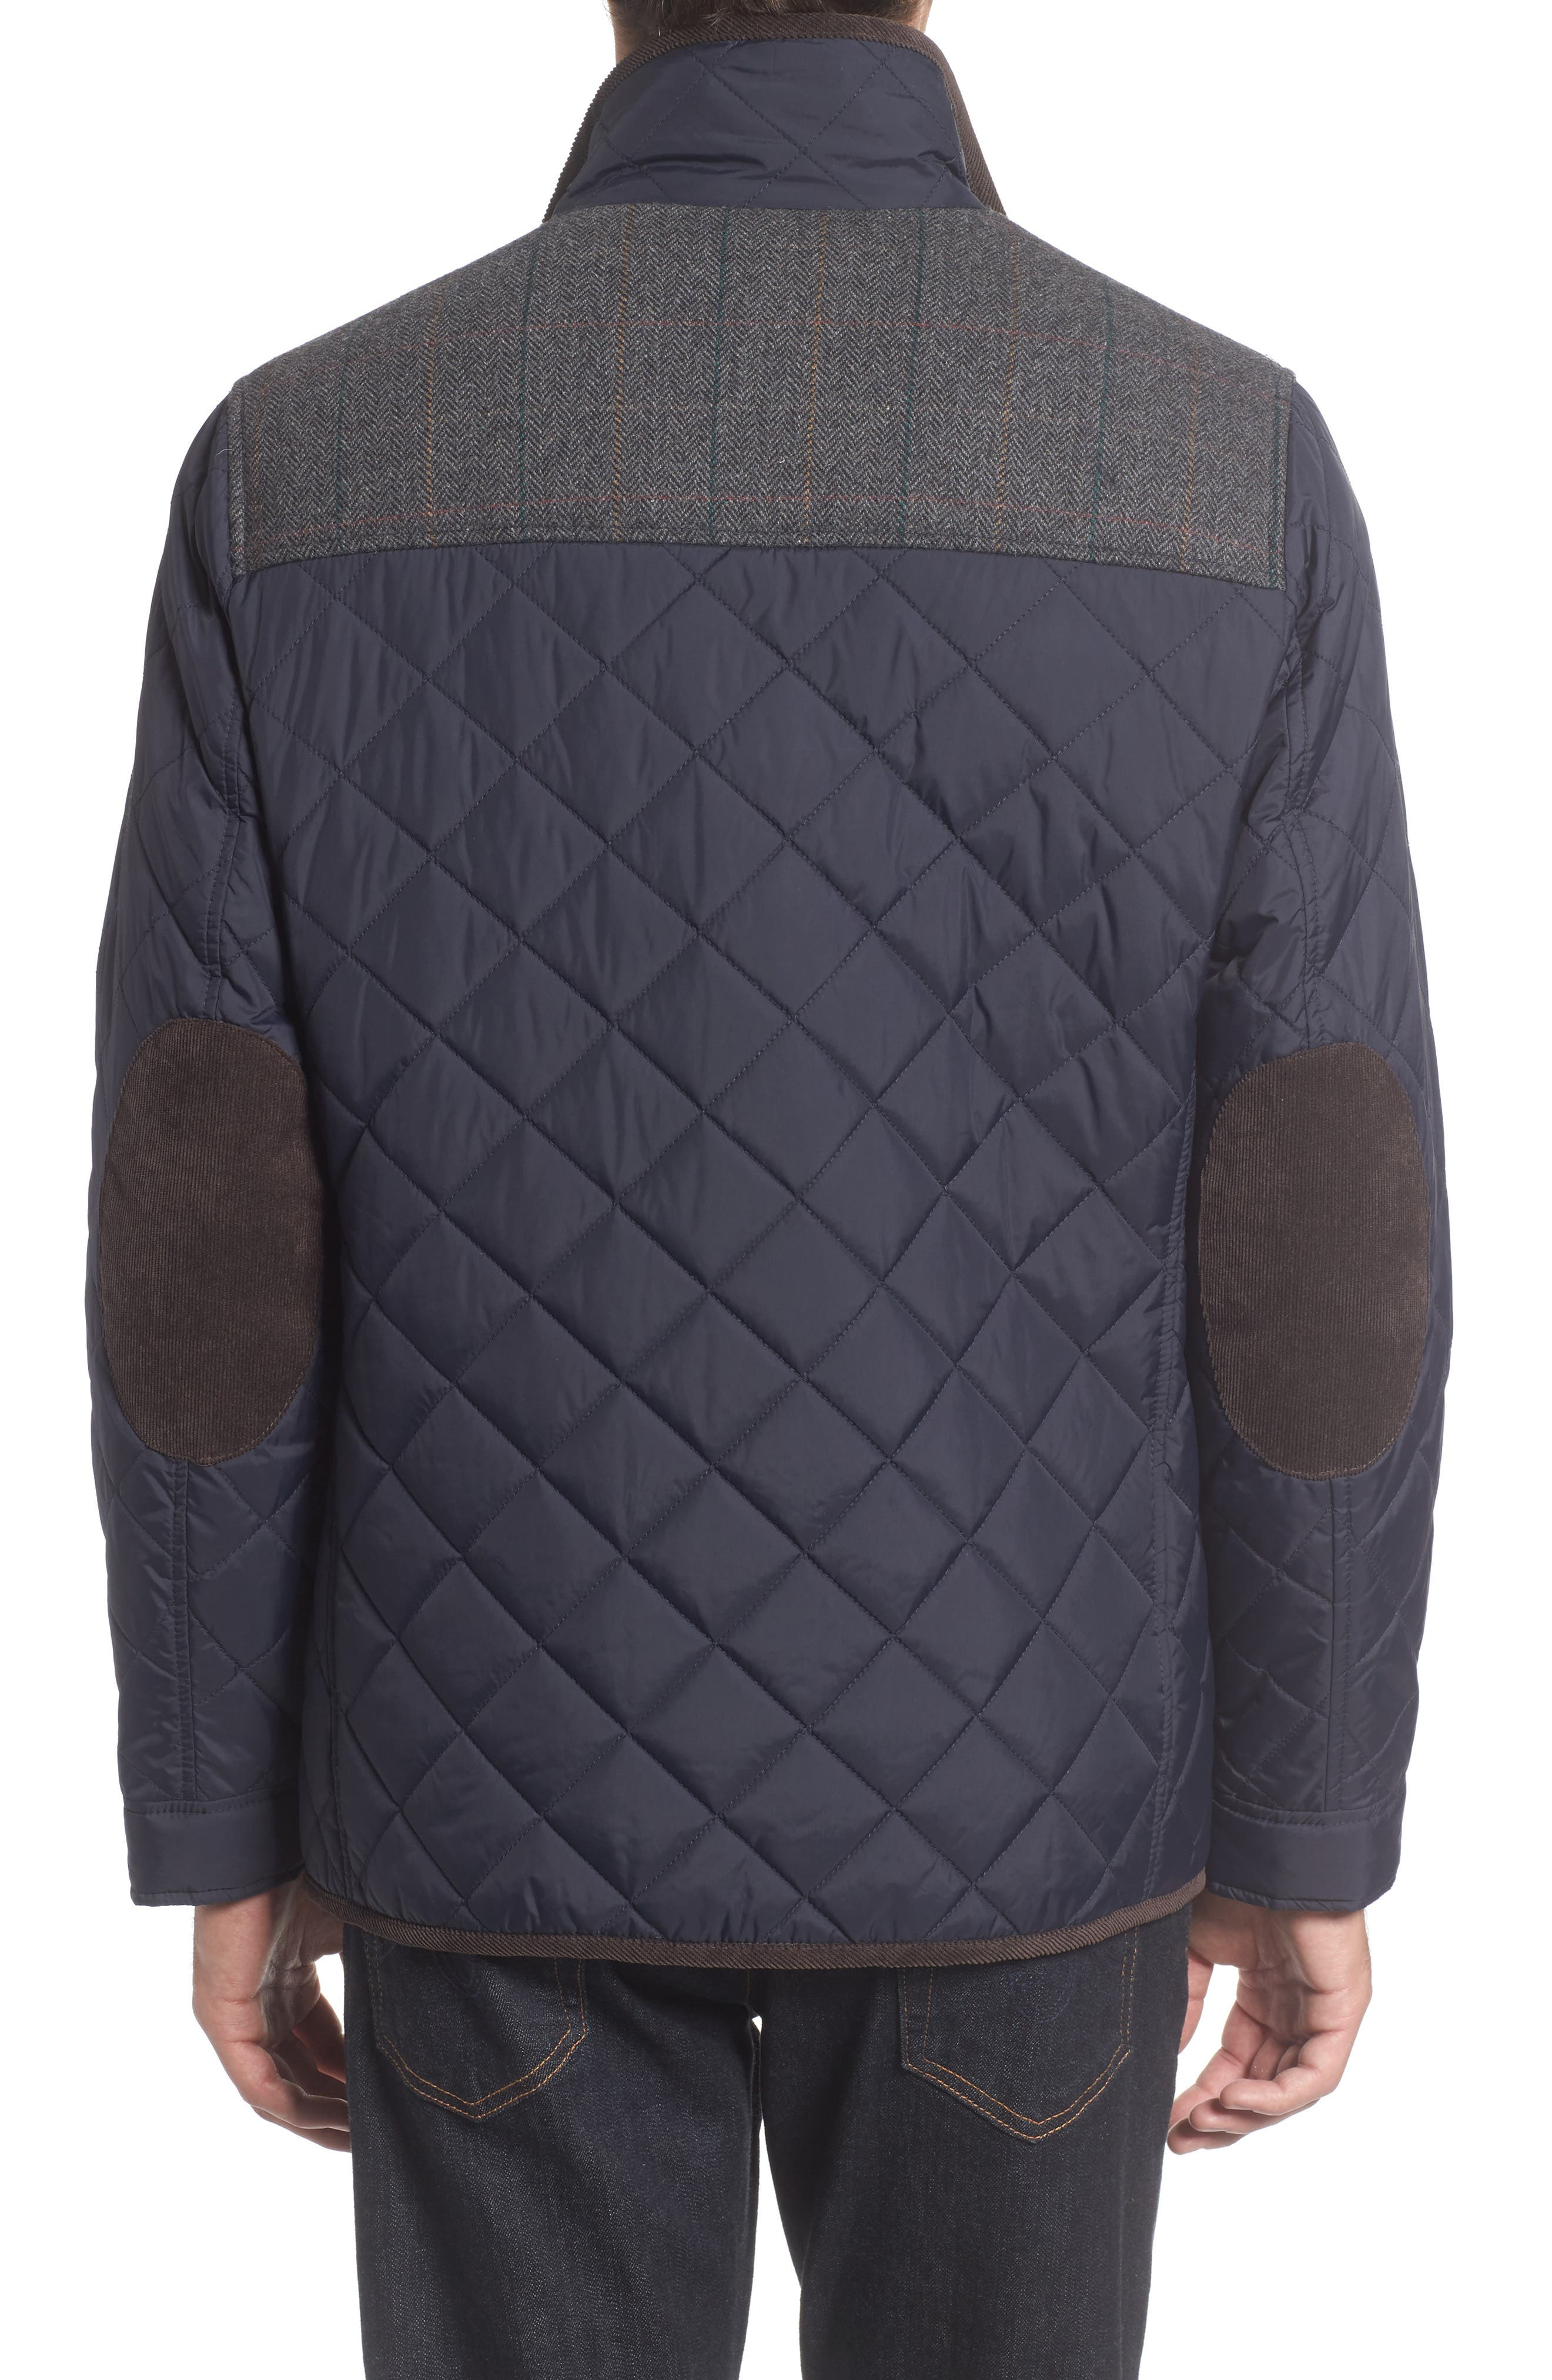 VINCE CAMUTO, Diamond Quilted Full Zip Jacket, Alternate thumbnail 4, color, NAVY